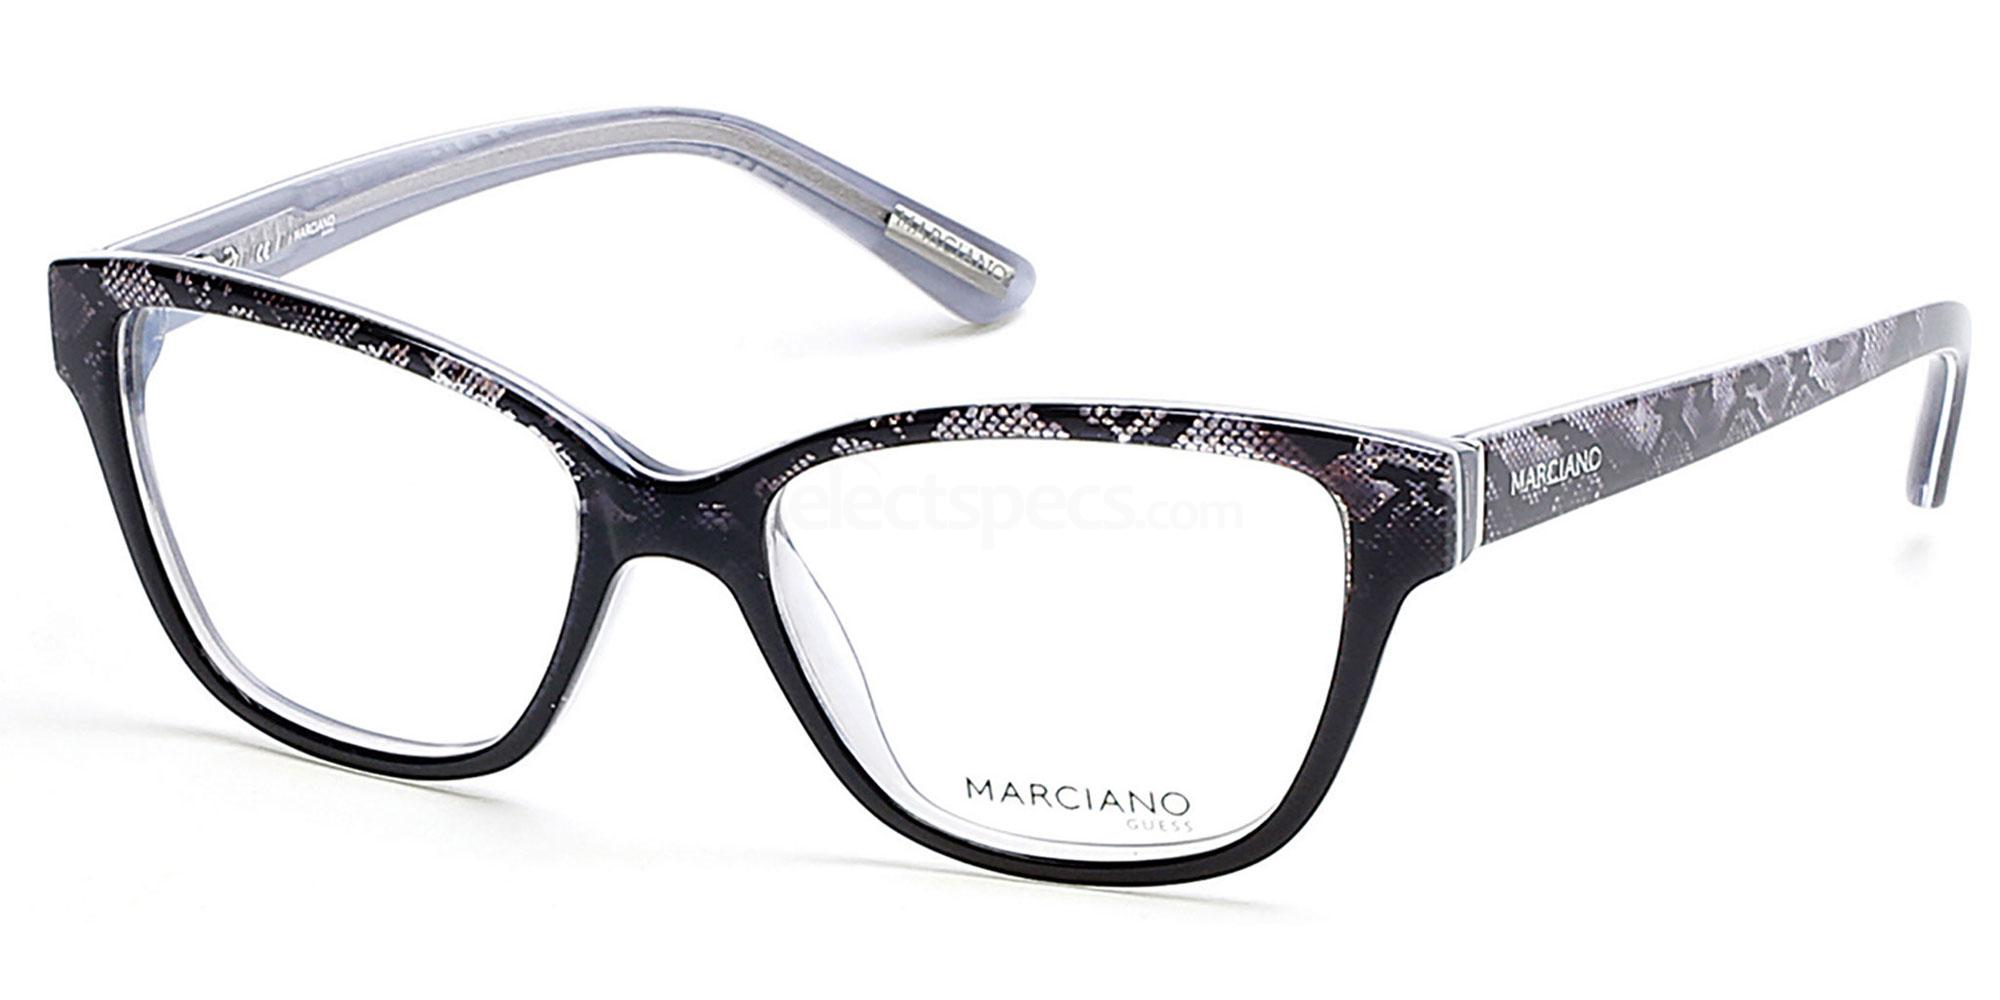 005 GM0280 Glasses, Guess by Marciano